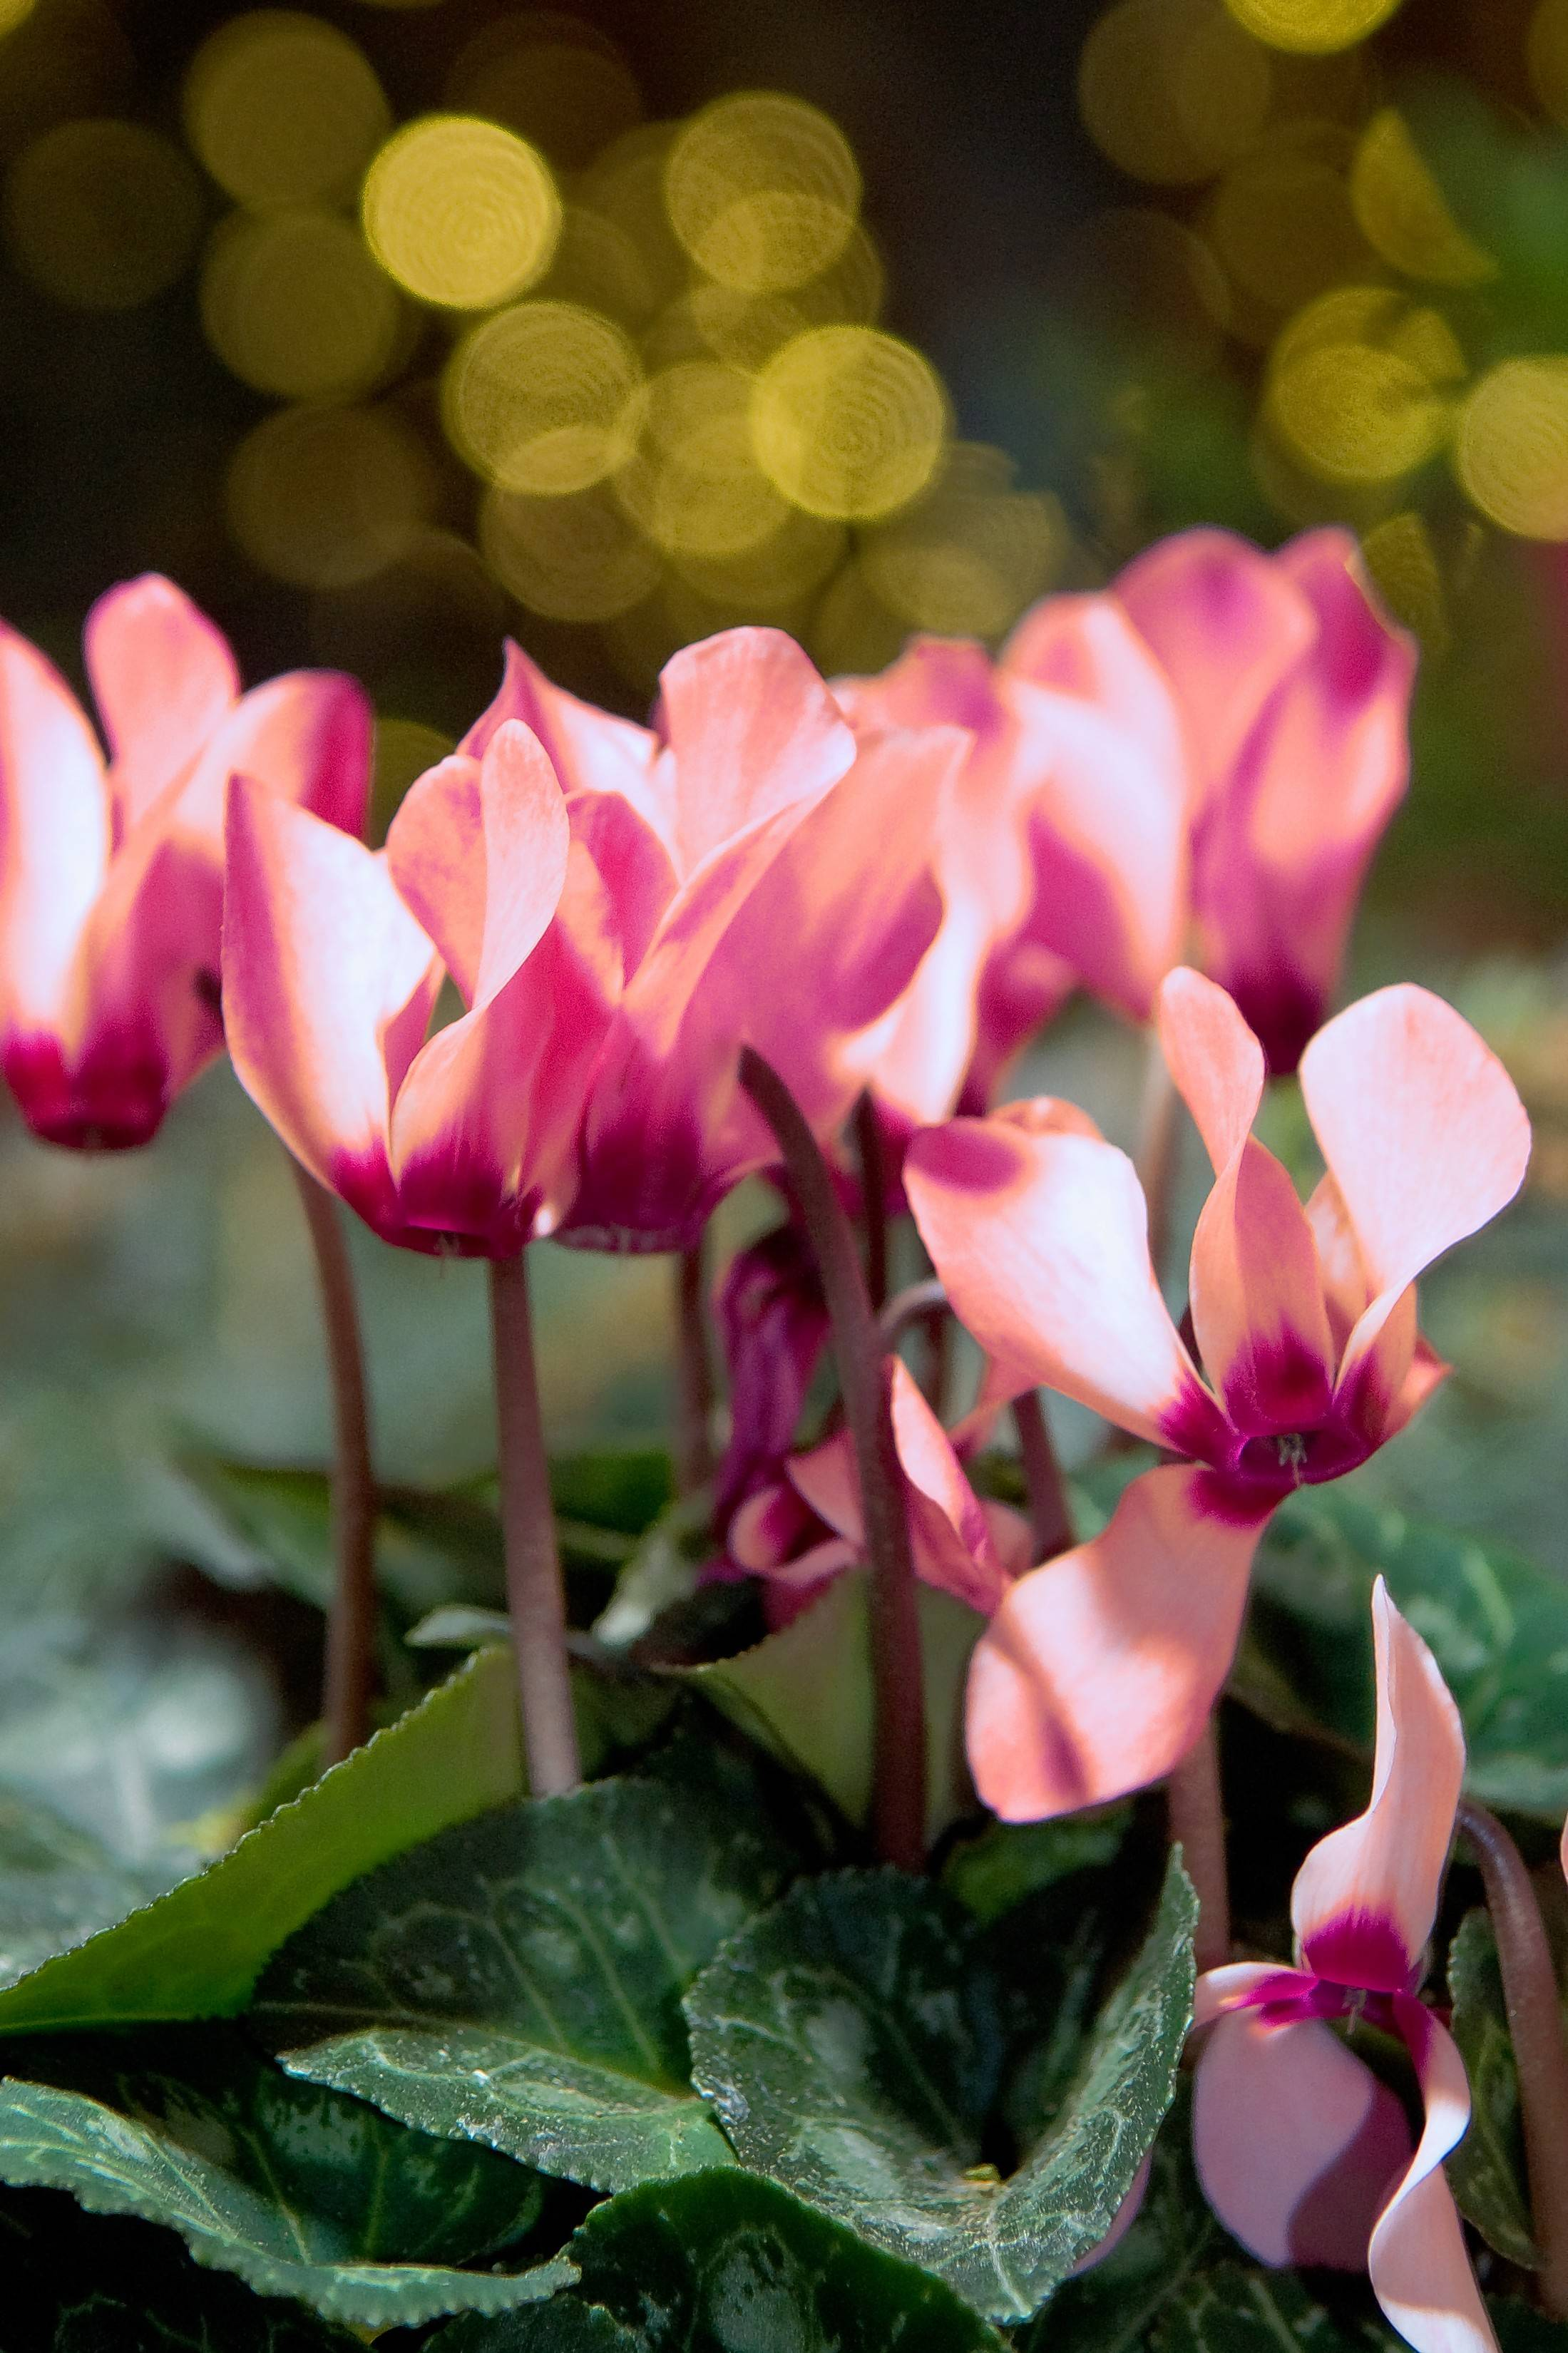 Cyclamen plants offer a burst of color in the spring.